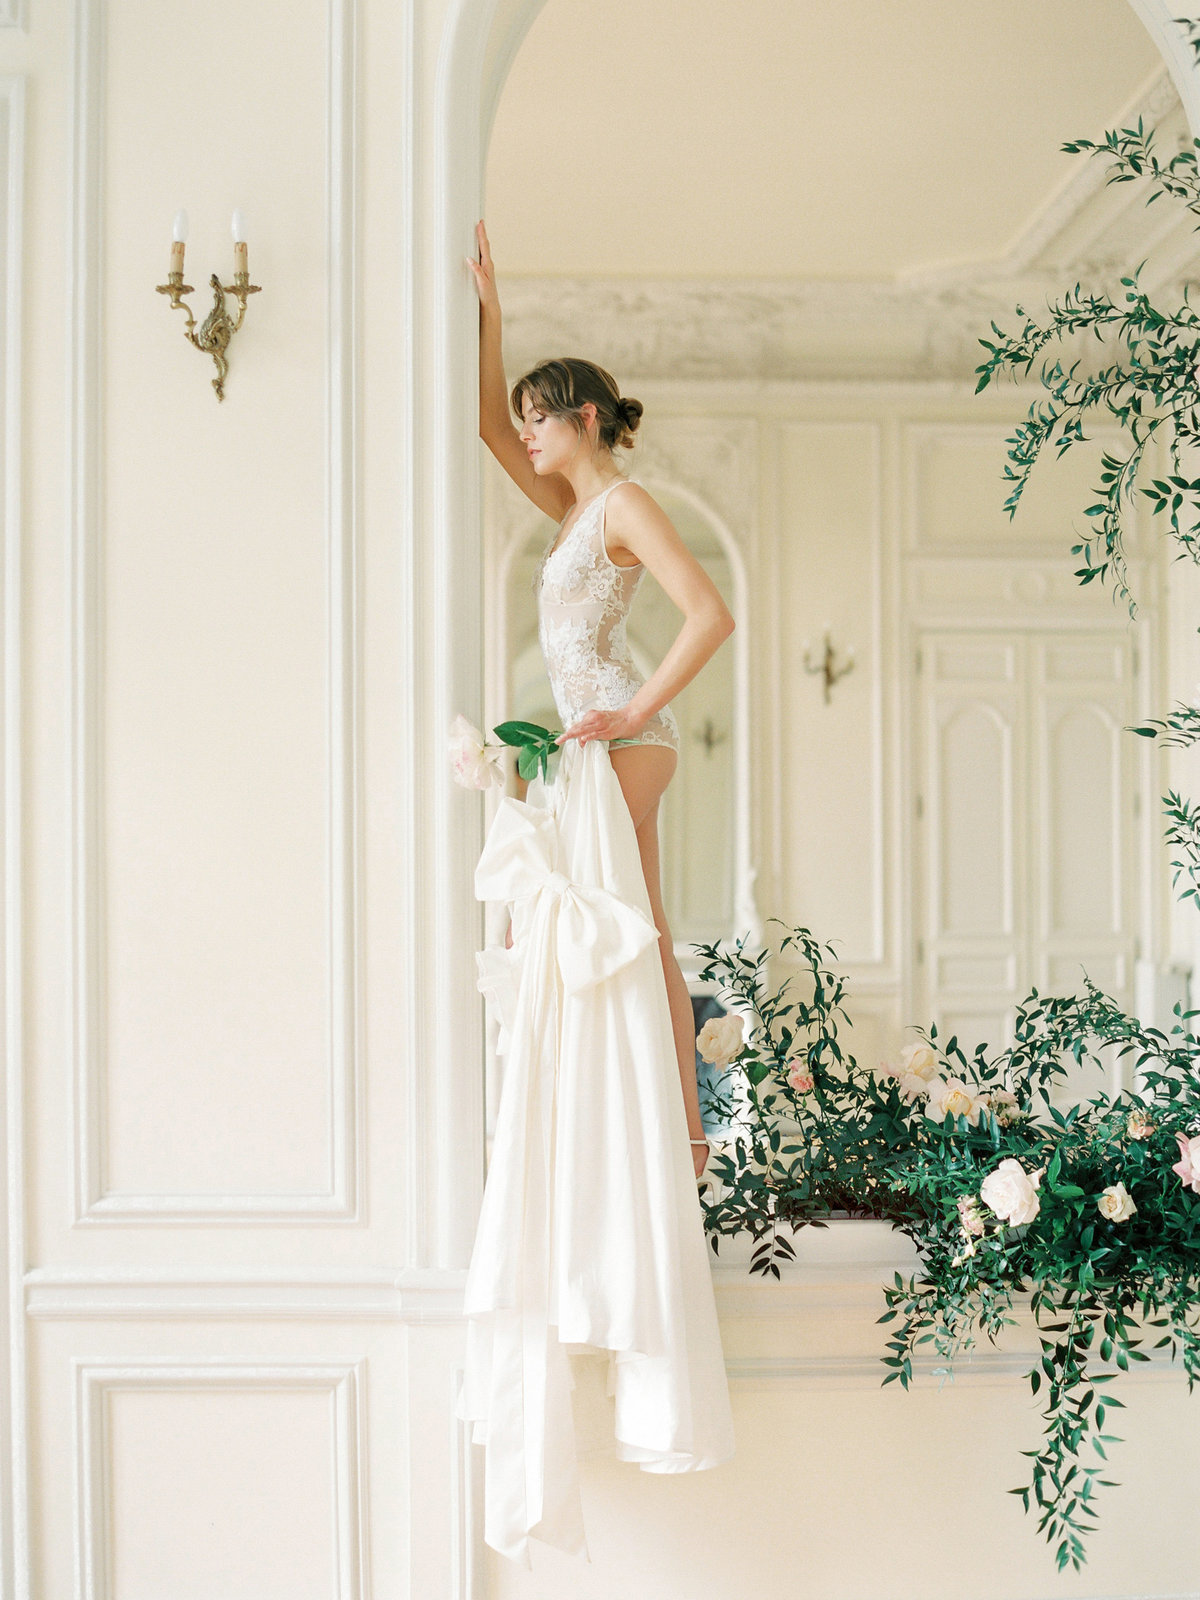 Luxurious french chateau wedding amelia soegijono0013